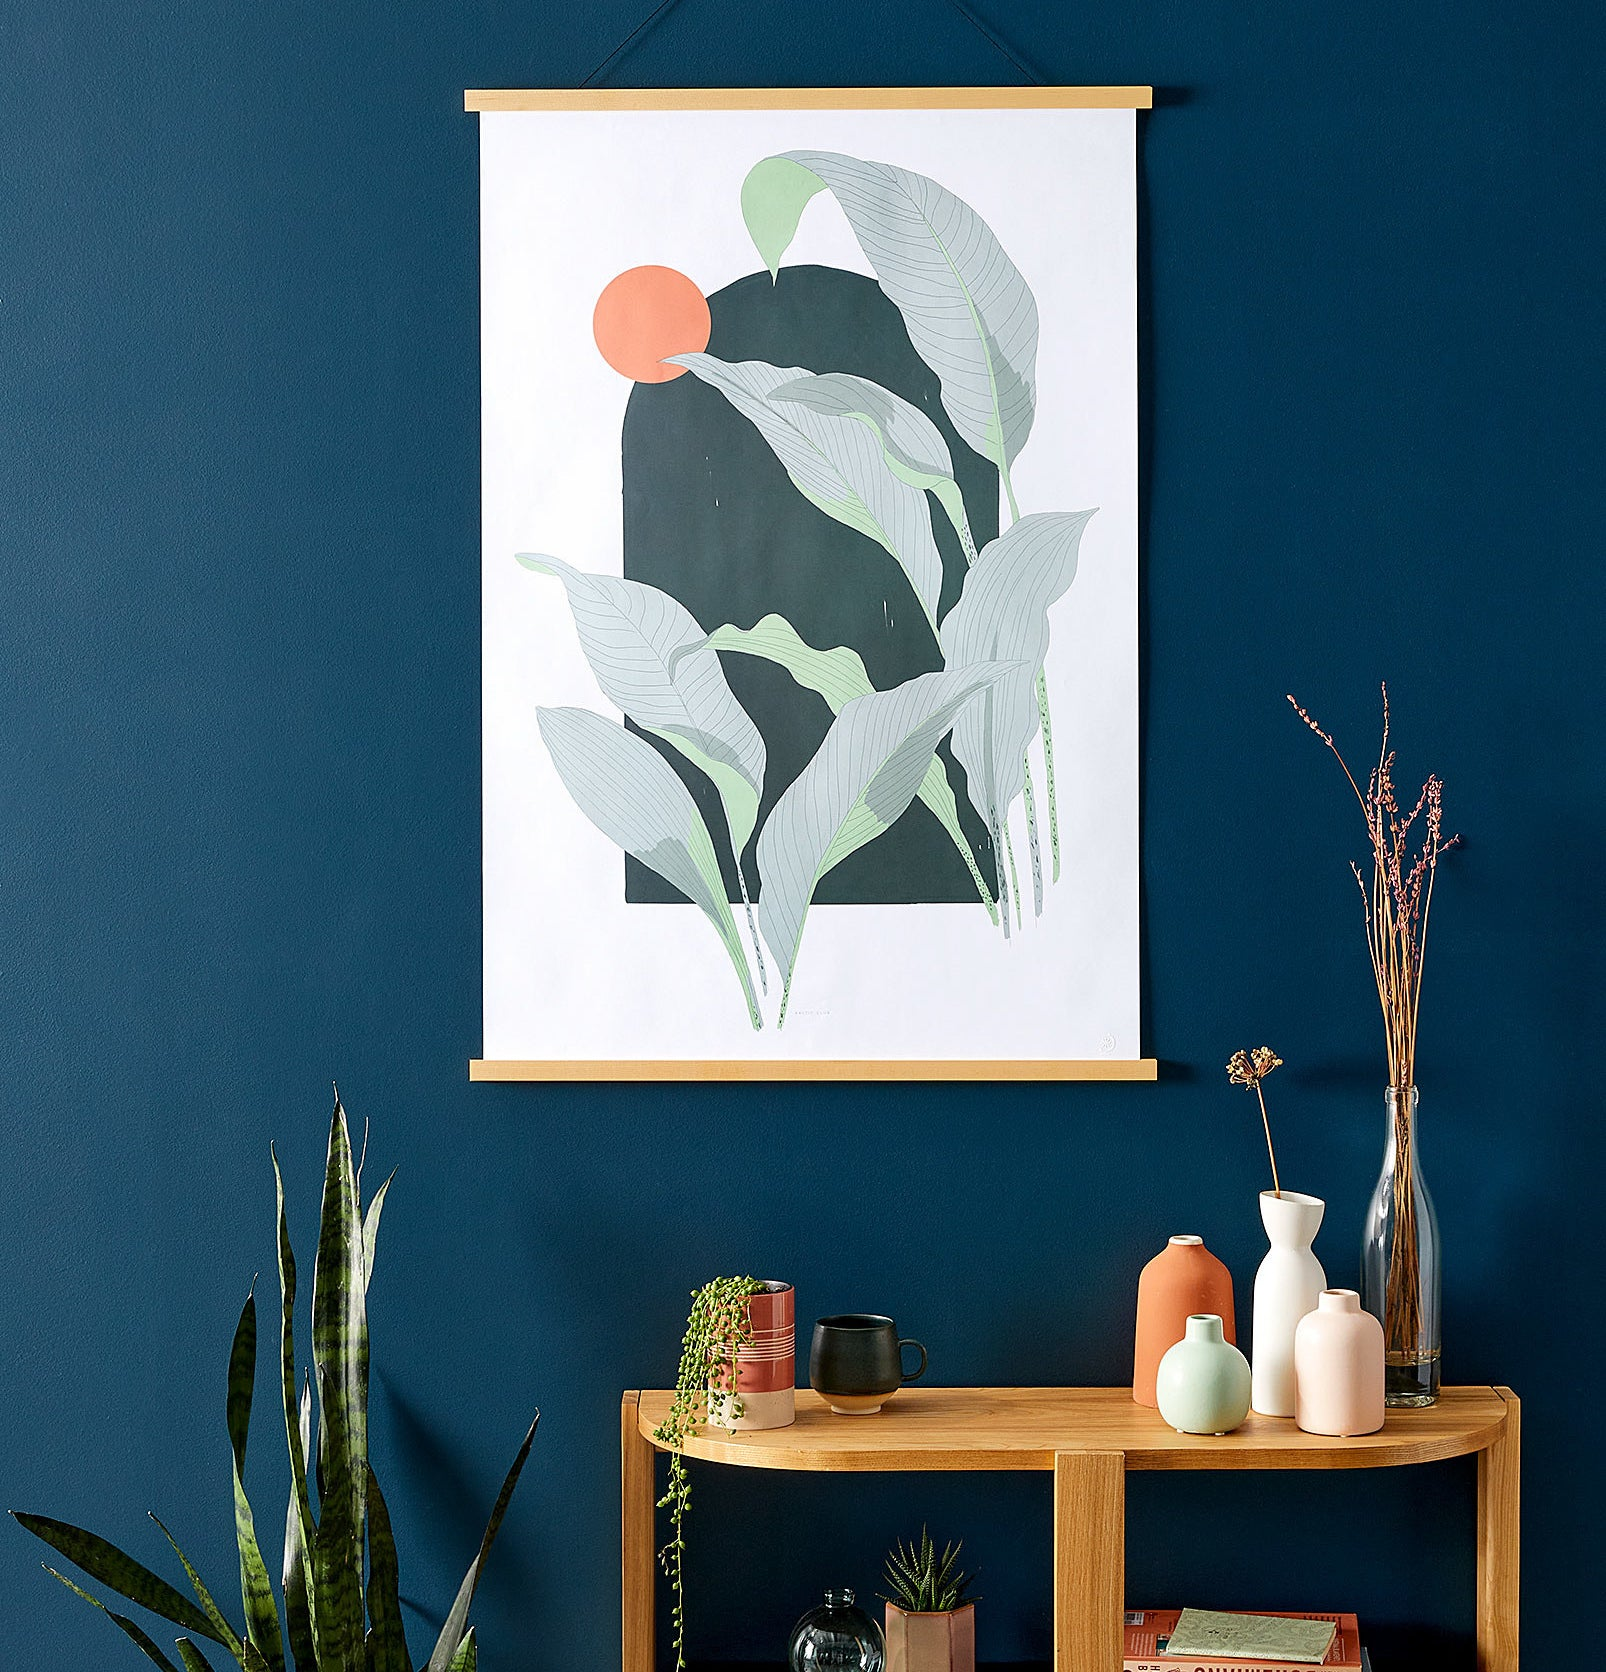 A leafy art print hanging in a frame next to a snake plant and a side table with vases on it